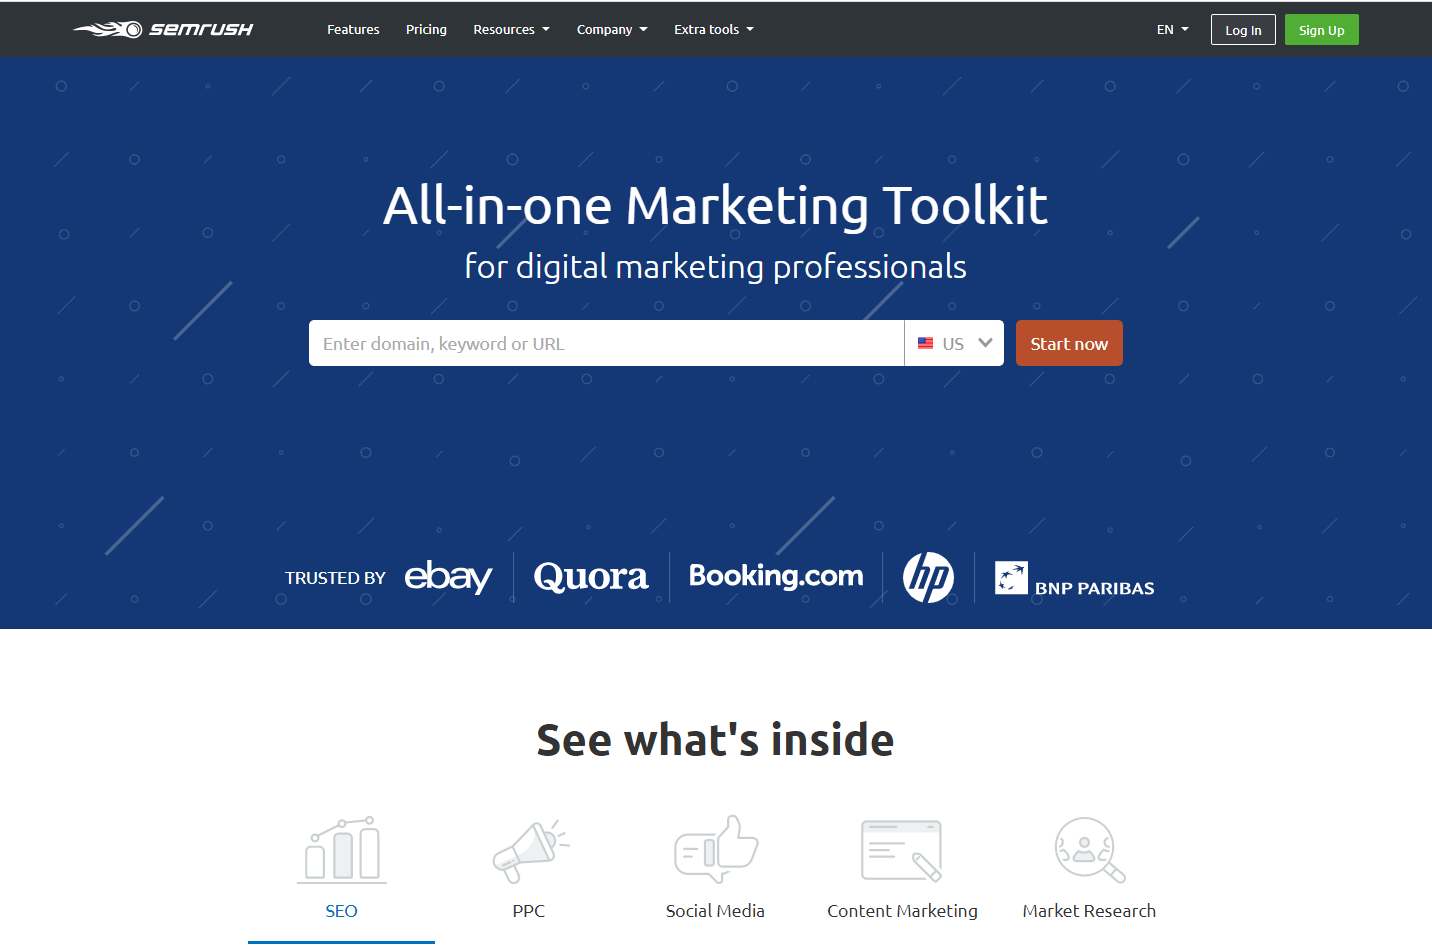 SEMrush is an all-in-one marketing toolkit for digital marketers